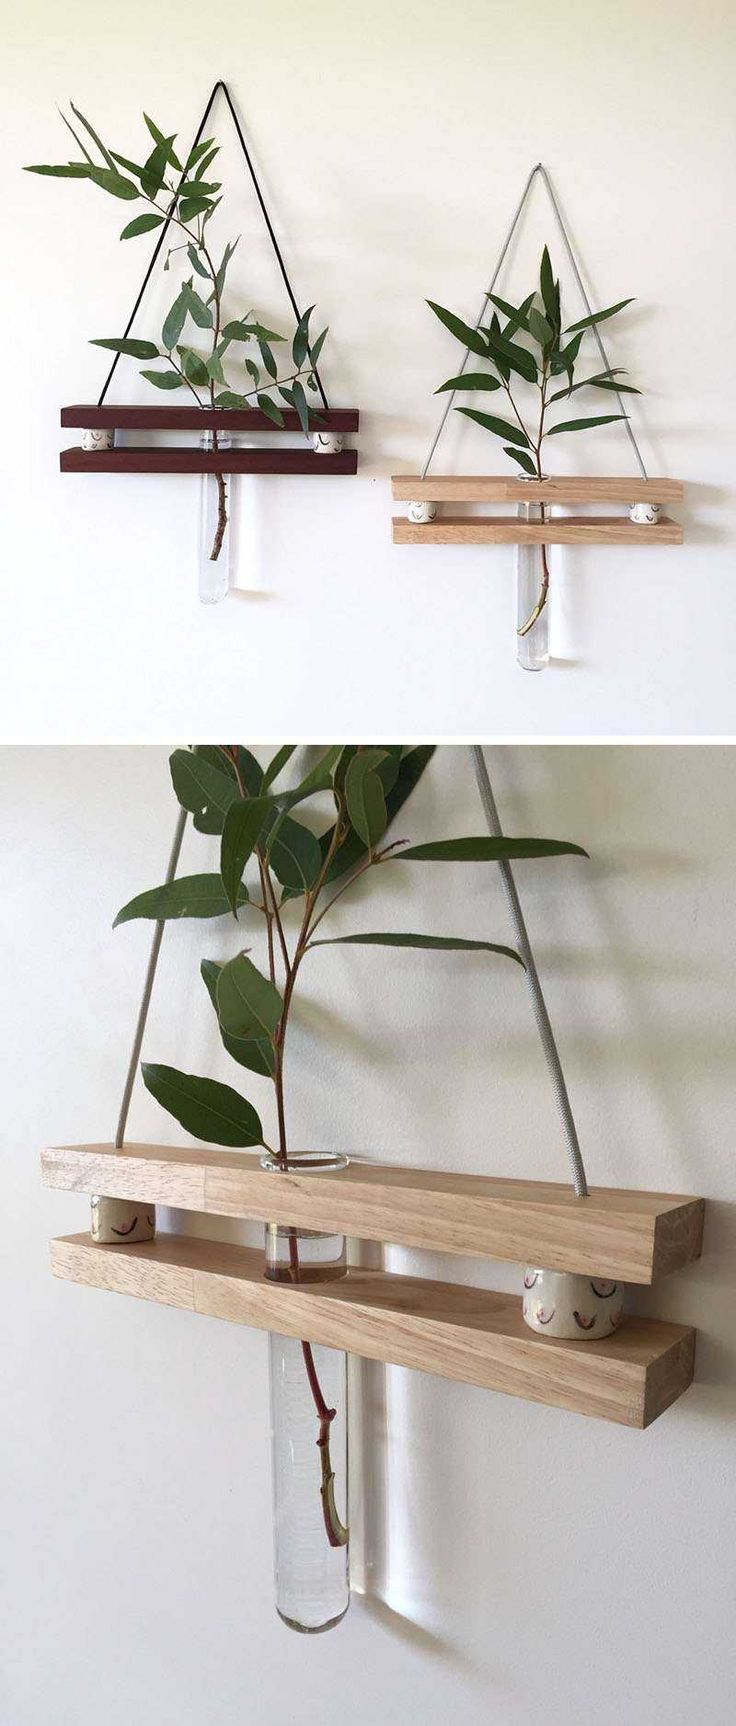 25 best ideas about plant ledge decorating on pinterest decorating ledges - Etagere suspendue ikea ...